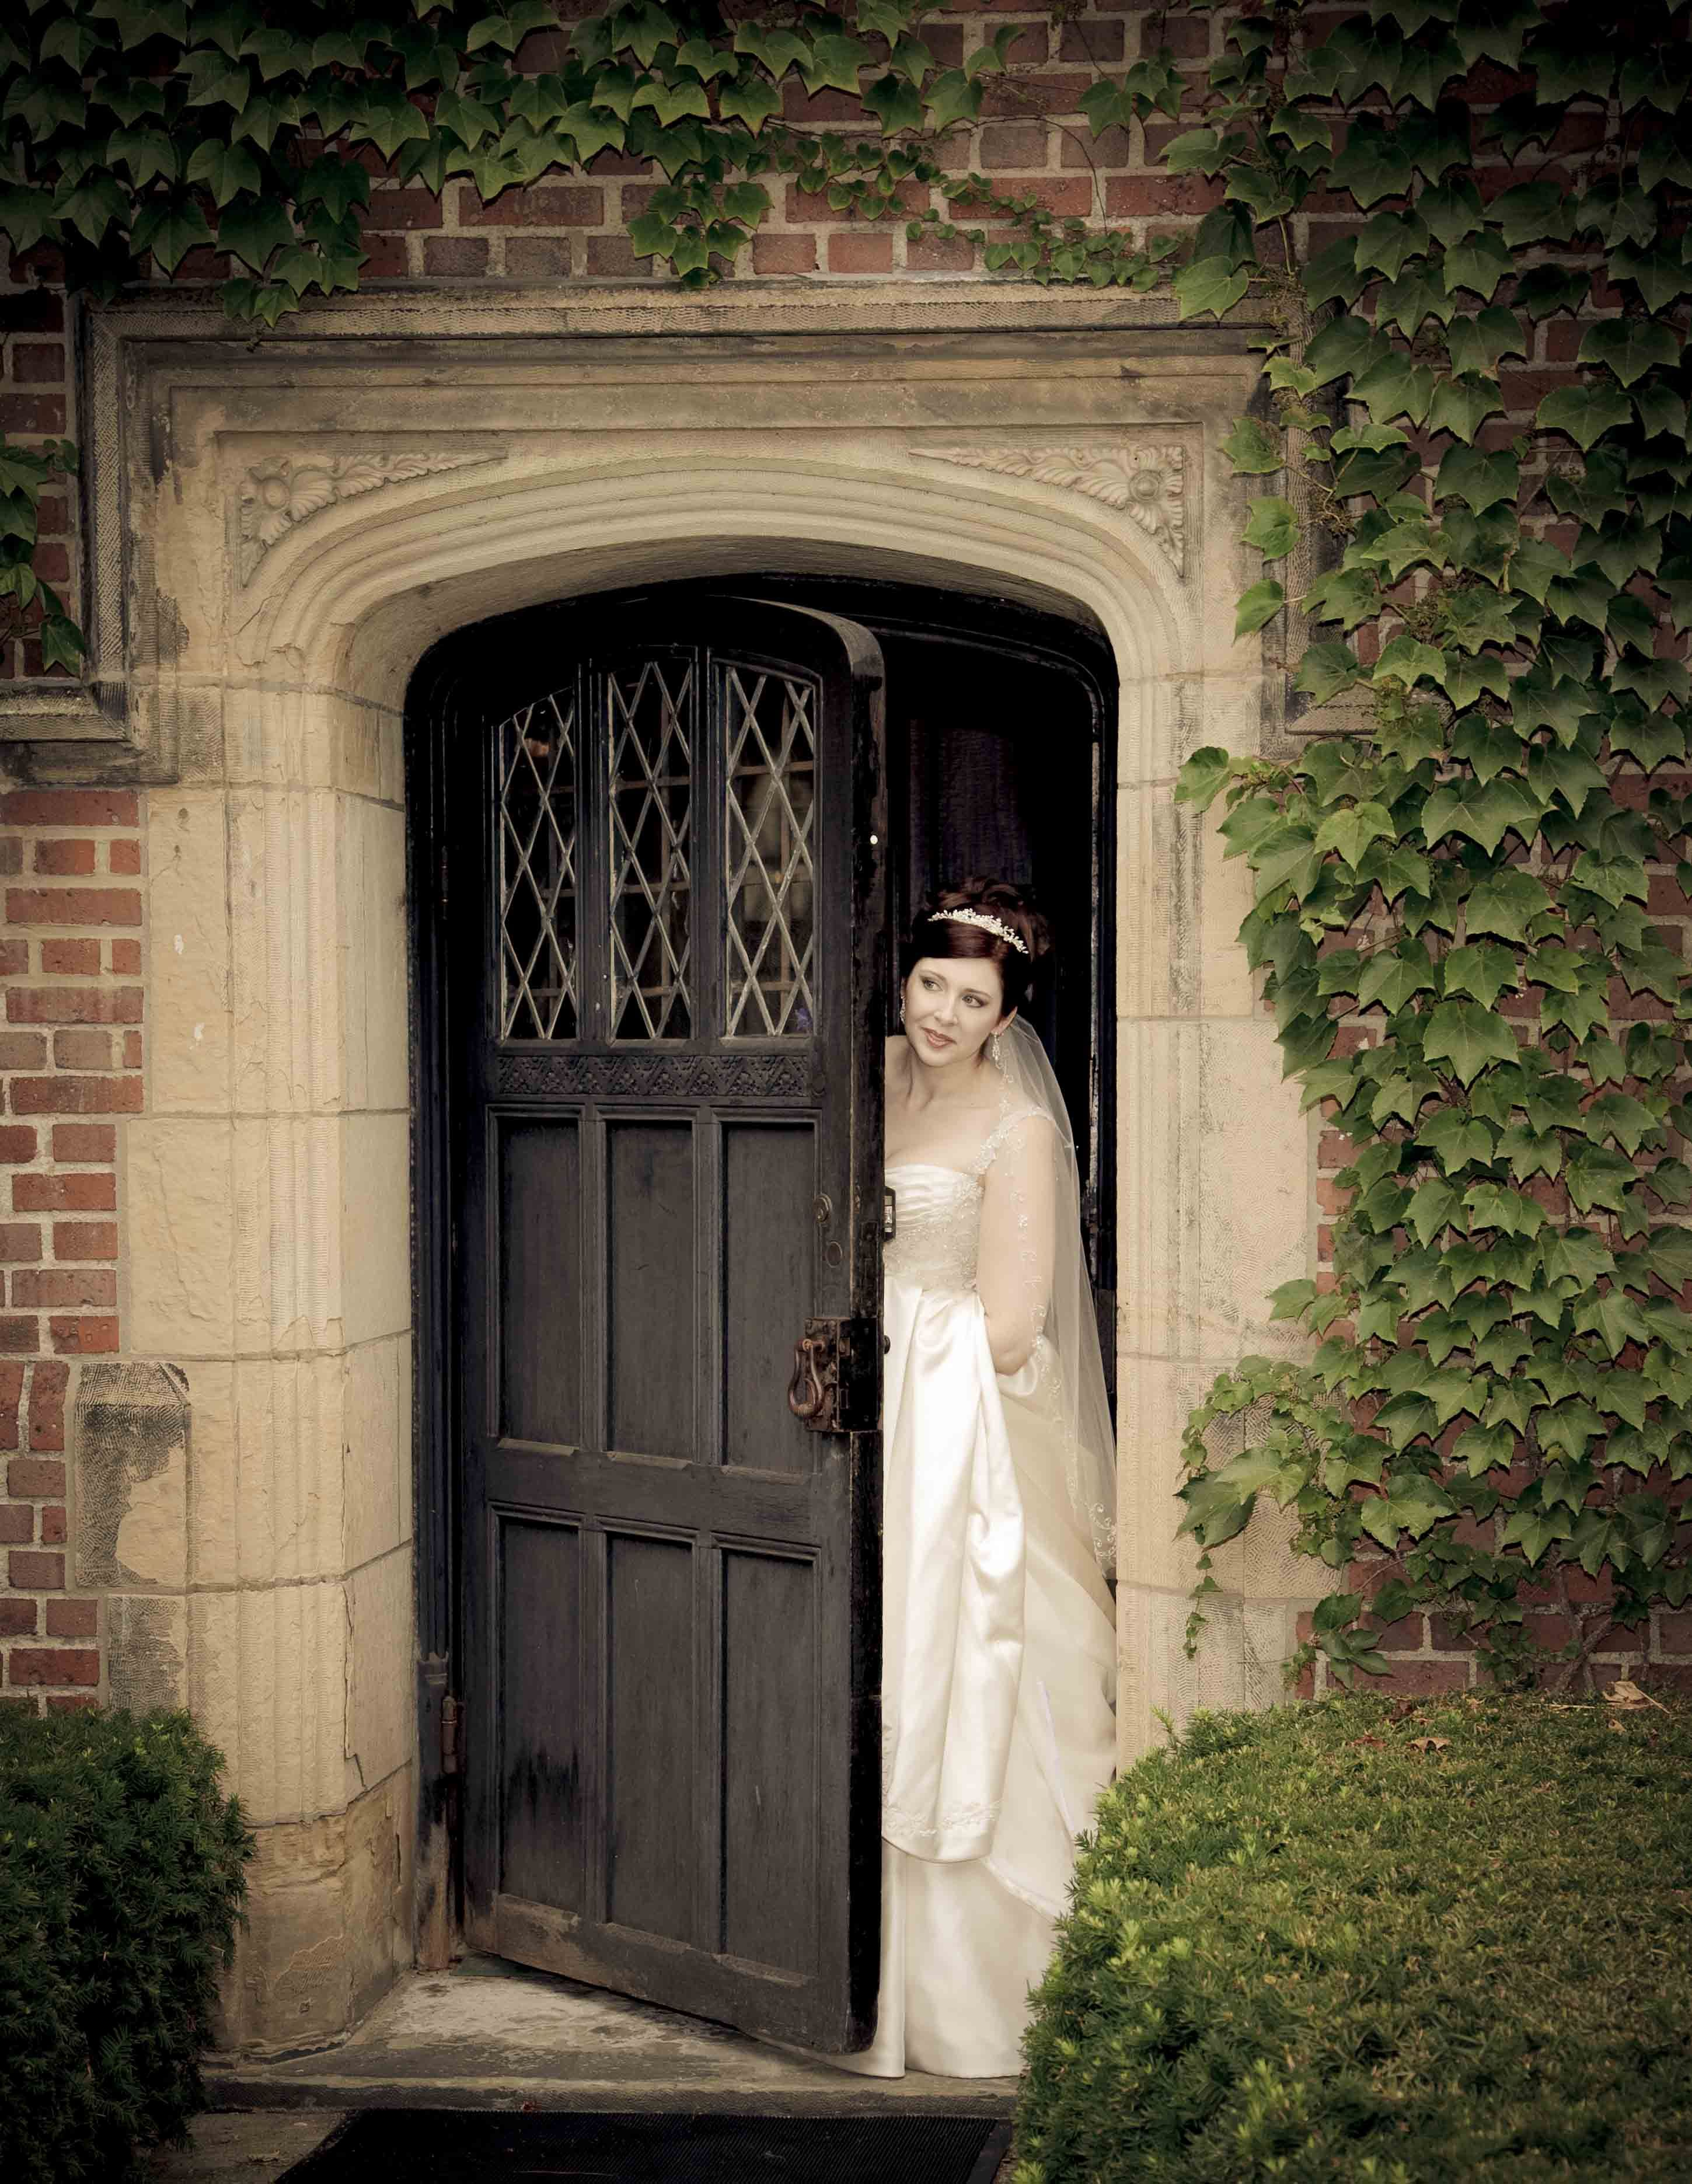 wedding picture locations akron ohio%0A Having her wedding at Stan Hywet Hall in Akron gave this brides wedding a  vintage feel